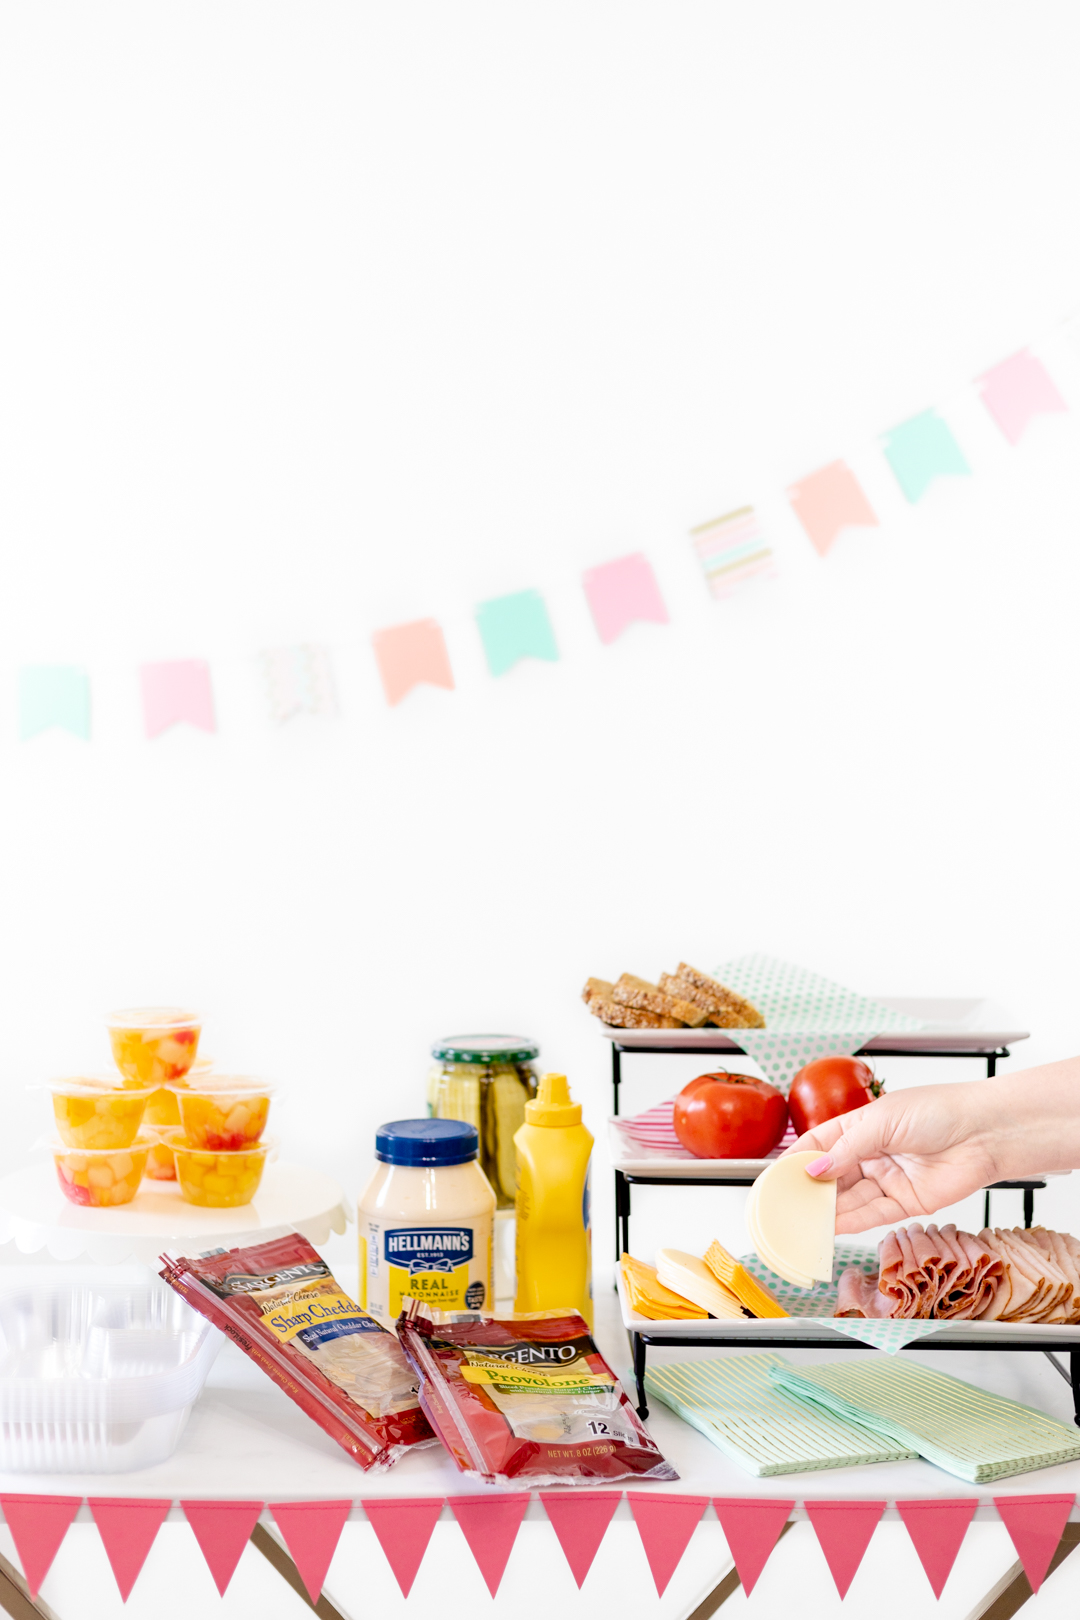 sandwich party spread with all the fixings and side options like fruit.